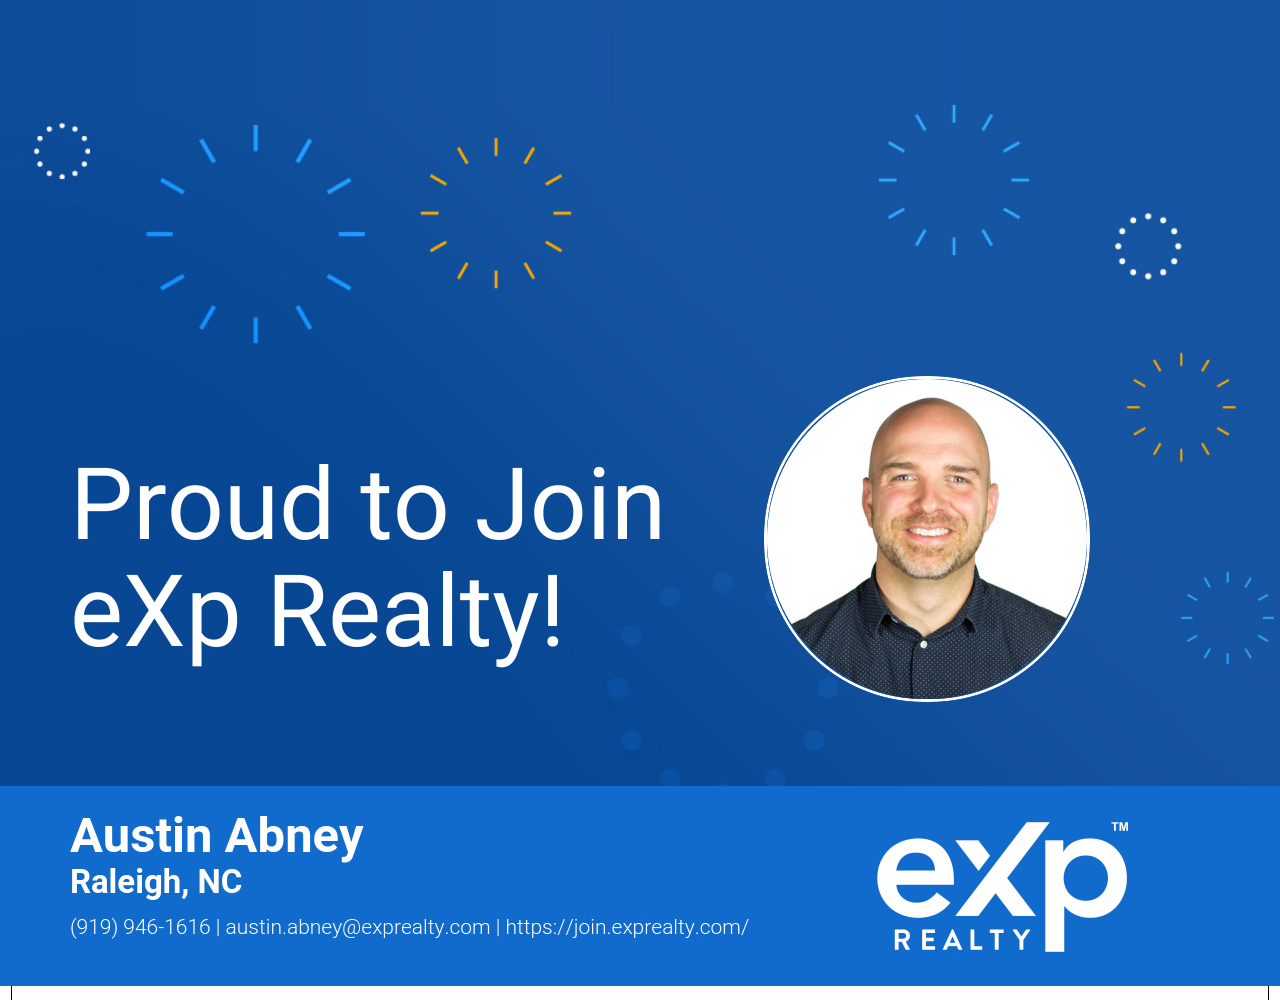 eXp Realty Welcomes Austin Abney!